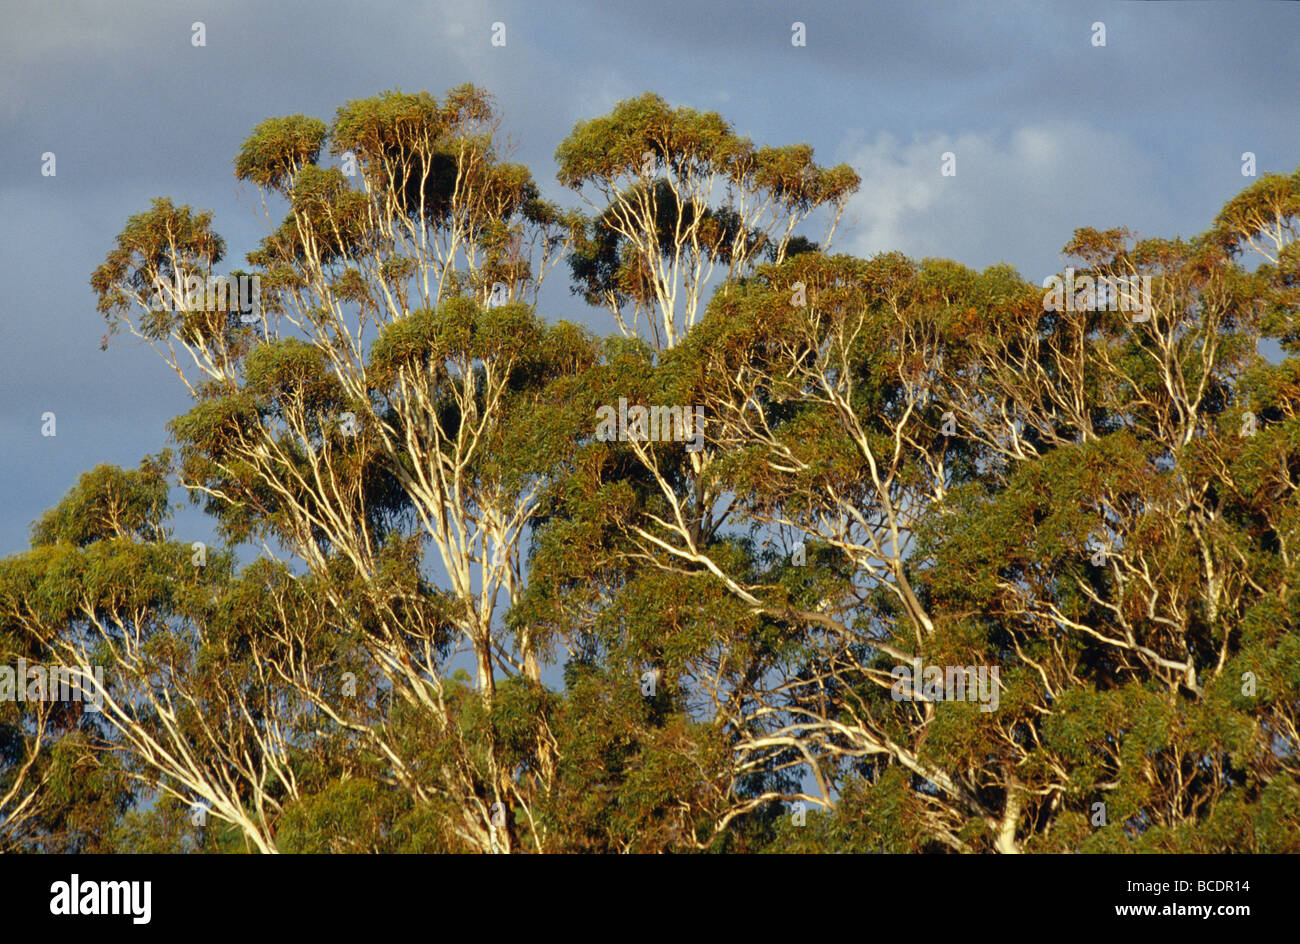 Sunset falls over a stormy sky and Eucalypt forest canopy. - Stock Image